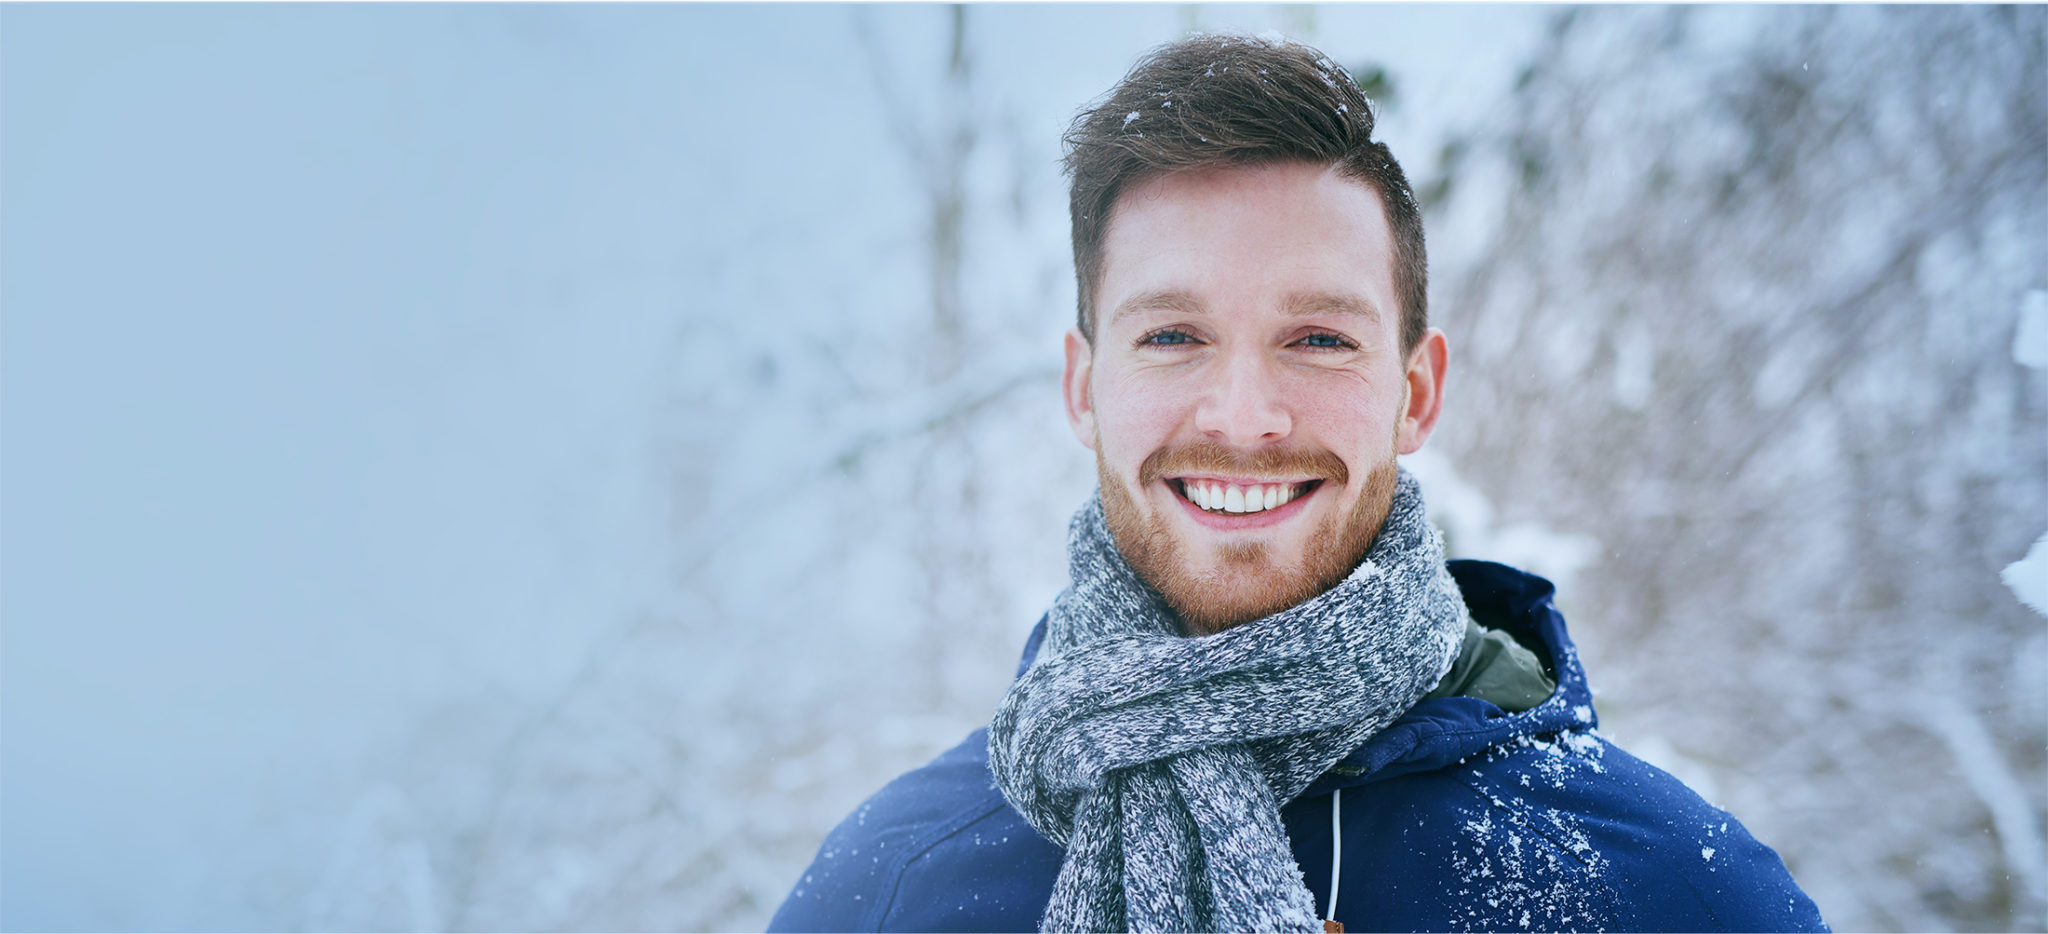 Smiling Man with a scarf in a snowfall